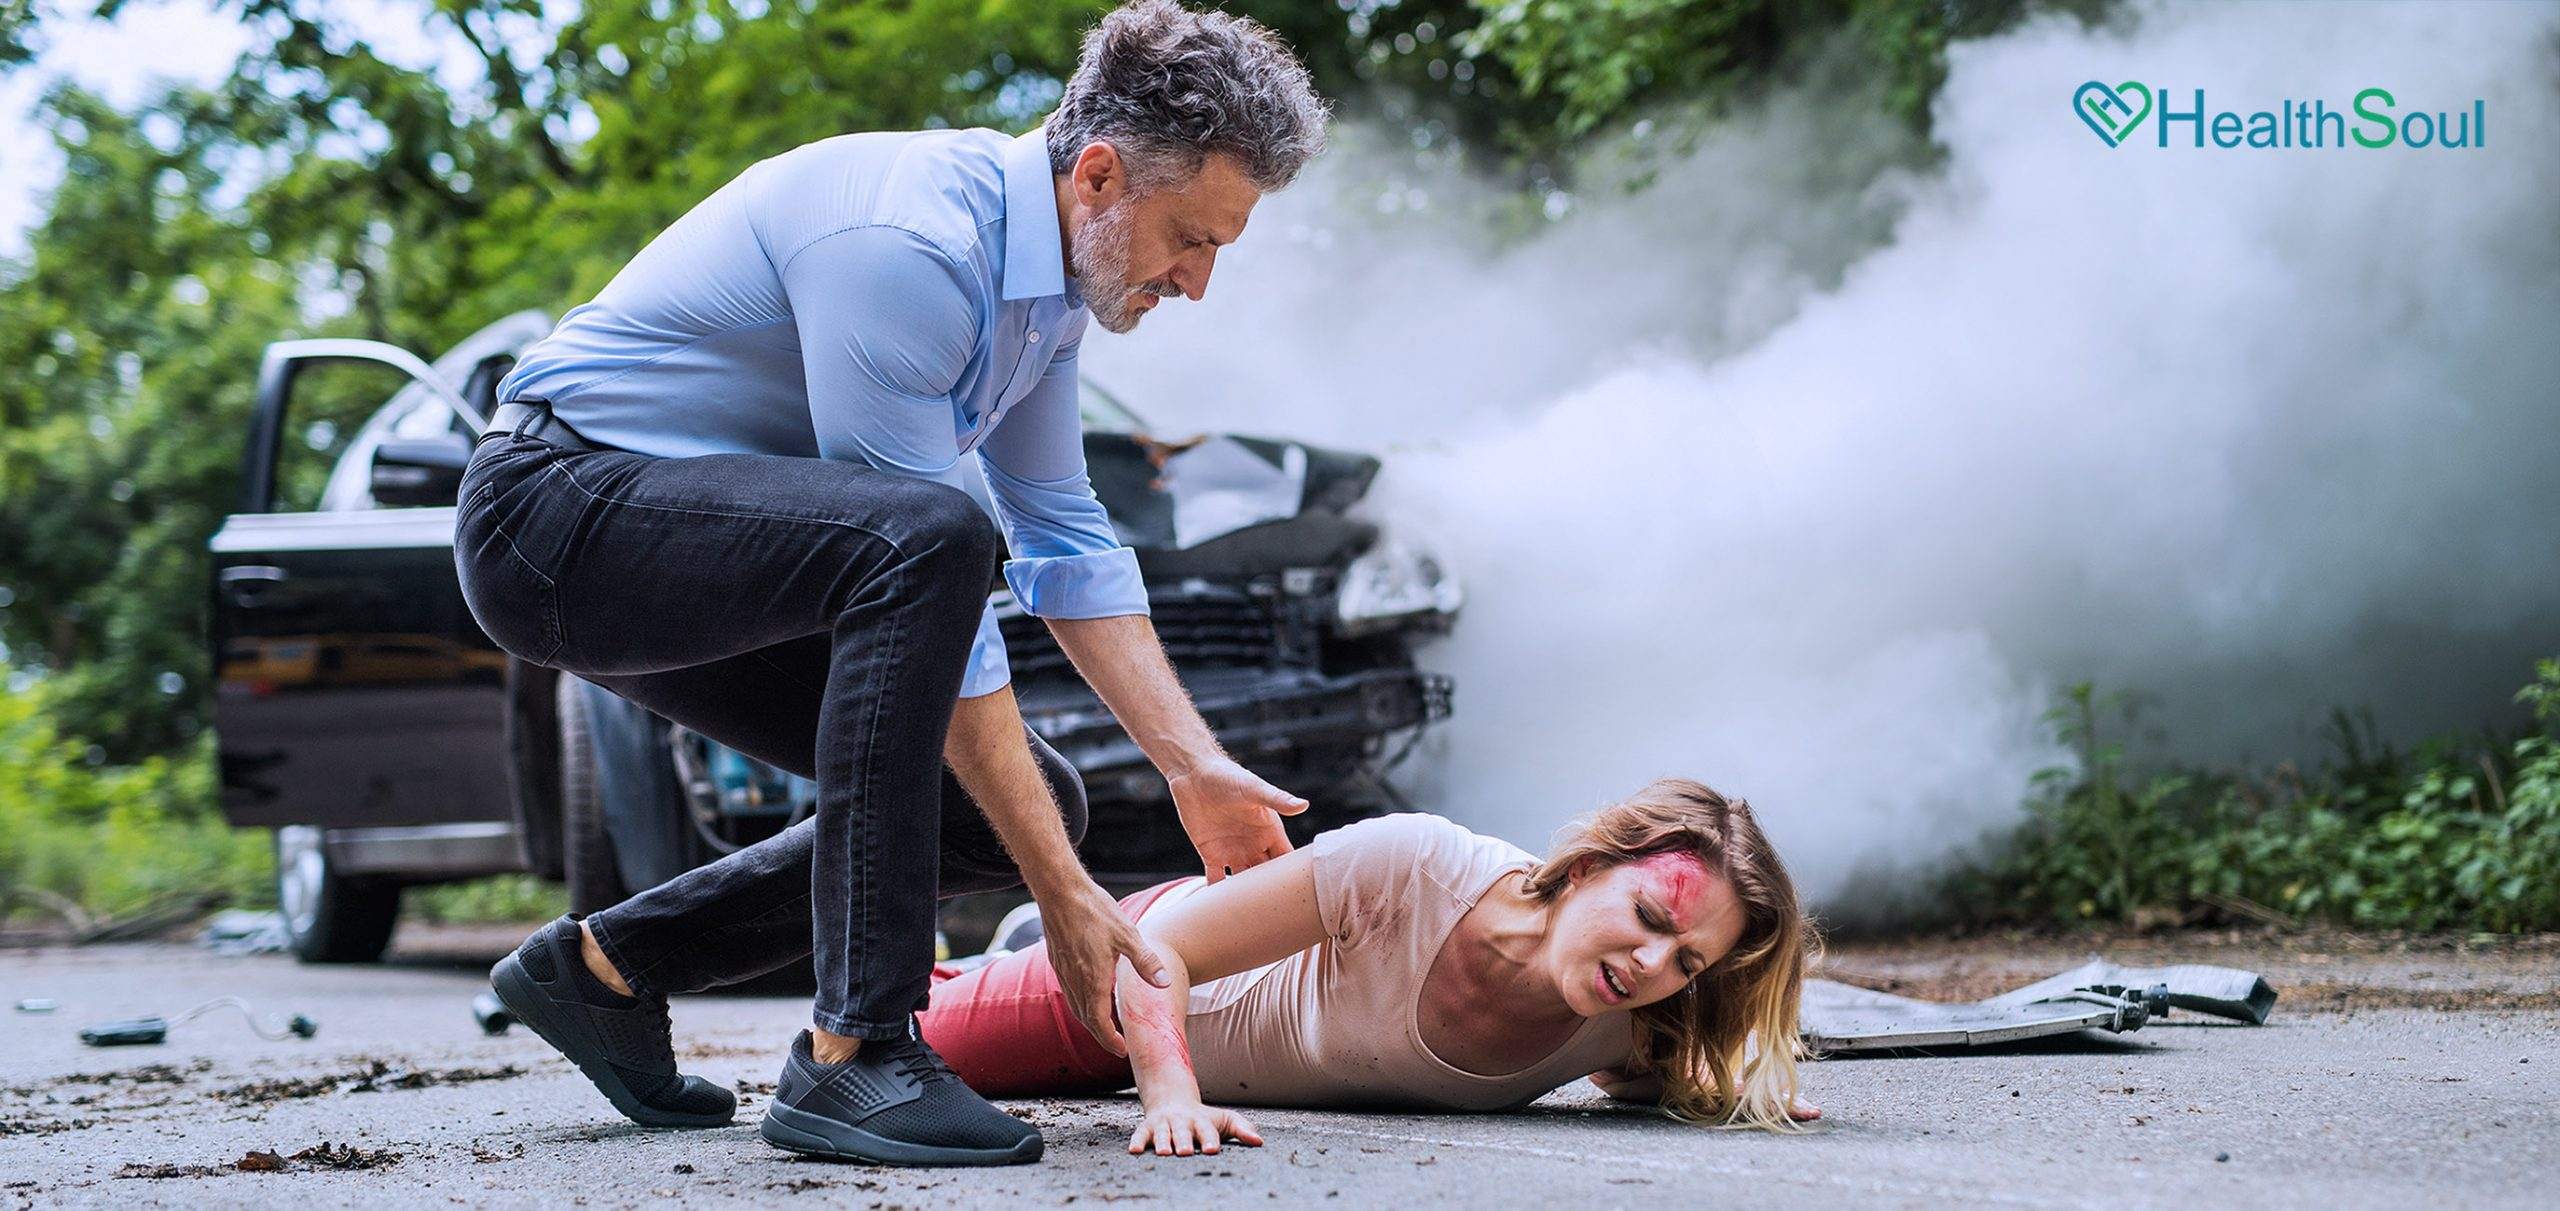 Filing a Personal Injury Claim_ Here are the Mistakes You Need to Avoid | HealthSoul